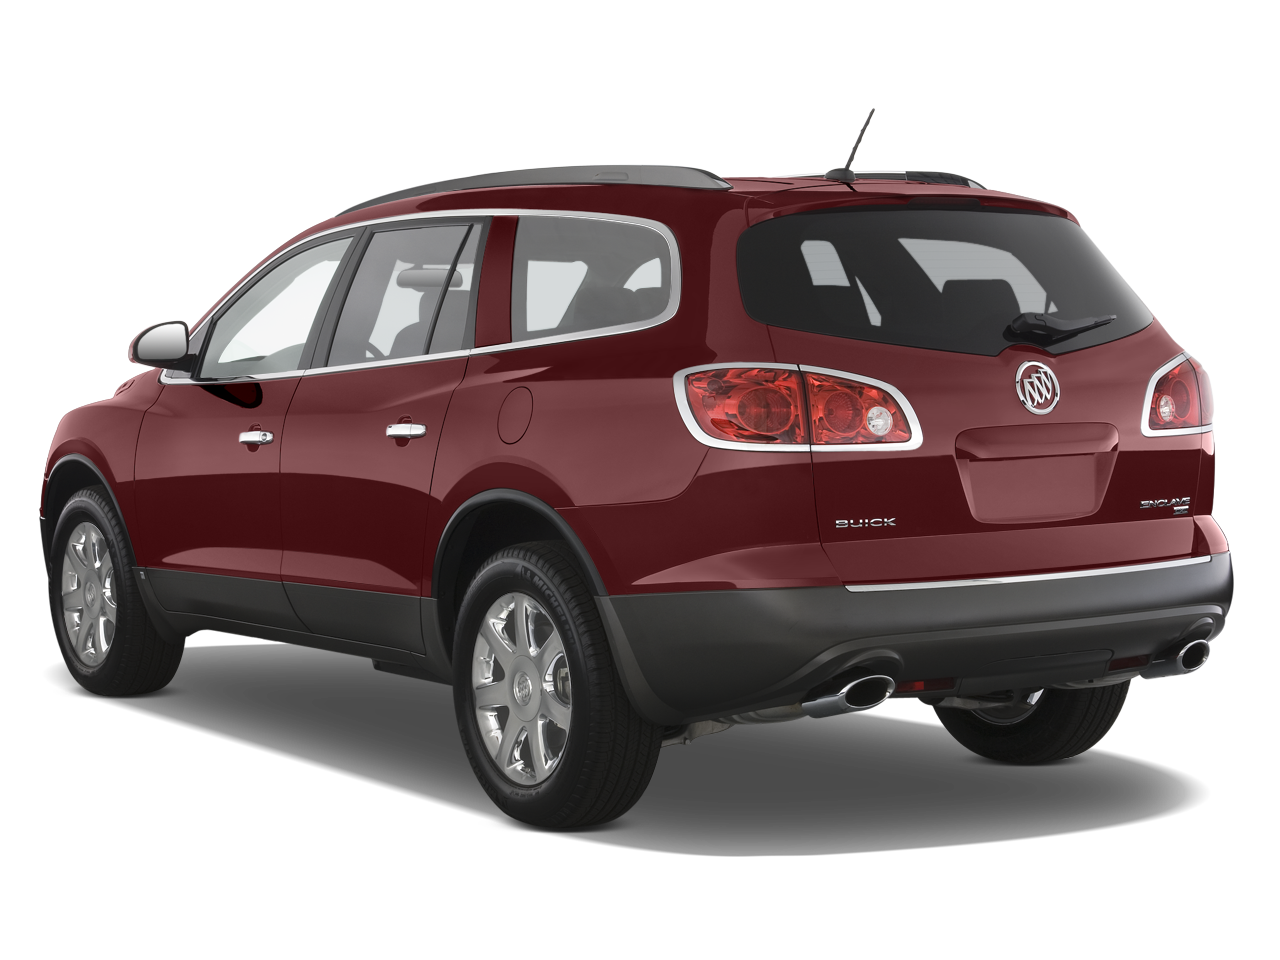 2008 buick enclave cxl buick crossover suv review automobile magazine. Black Bedroom Furniture Sets. Home Design Ideas